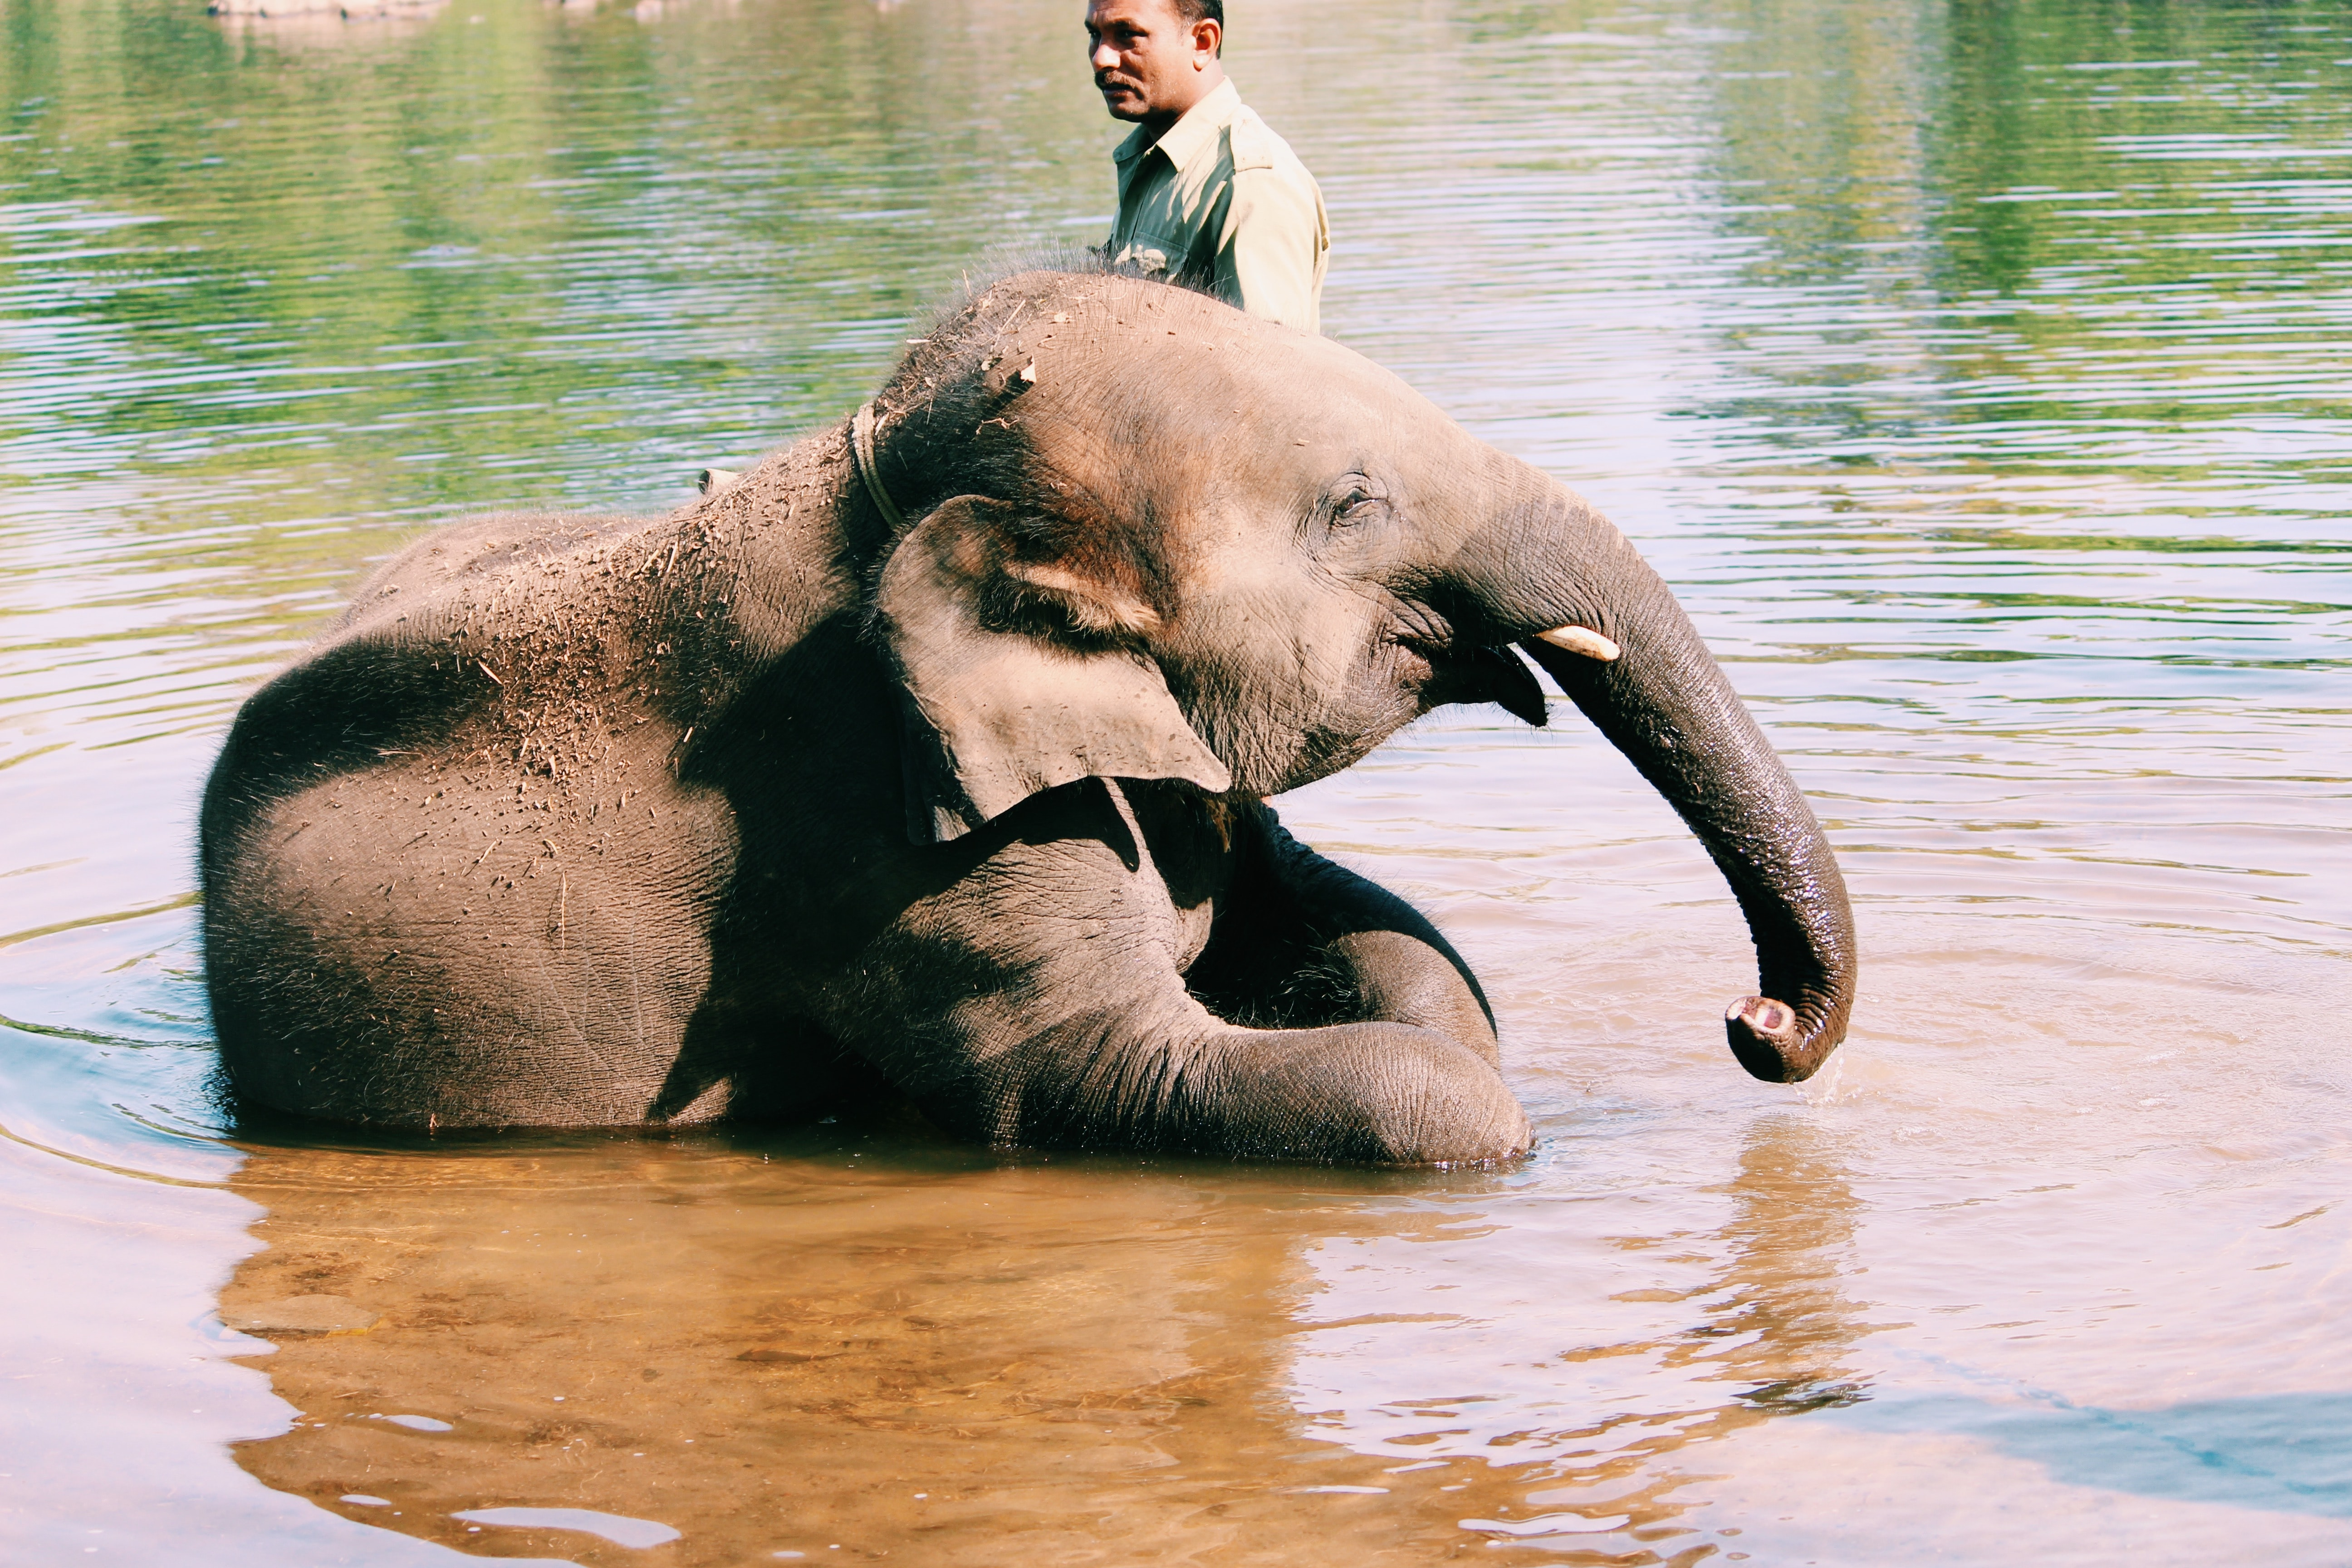 elephant lying on water beside man during daytime